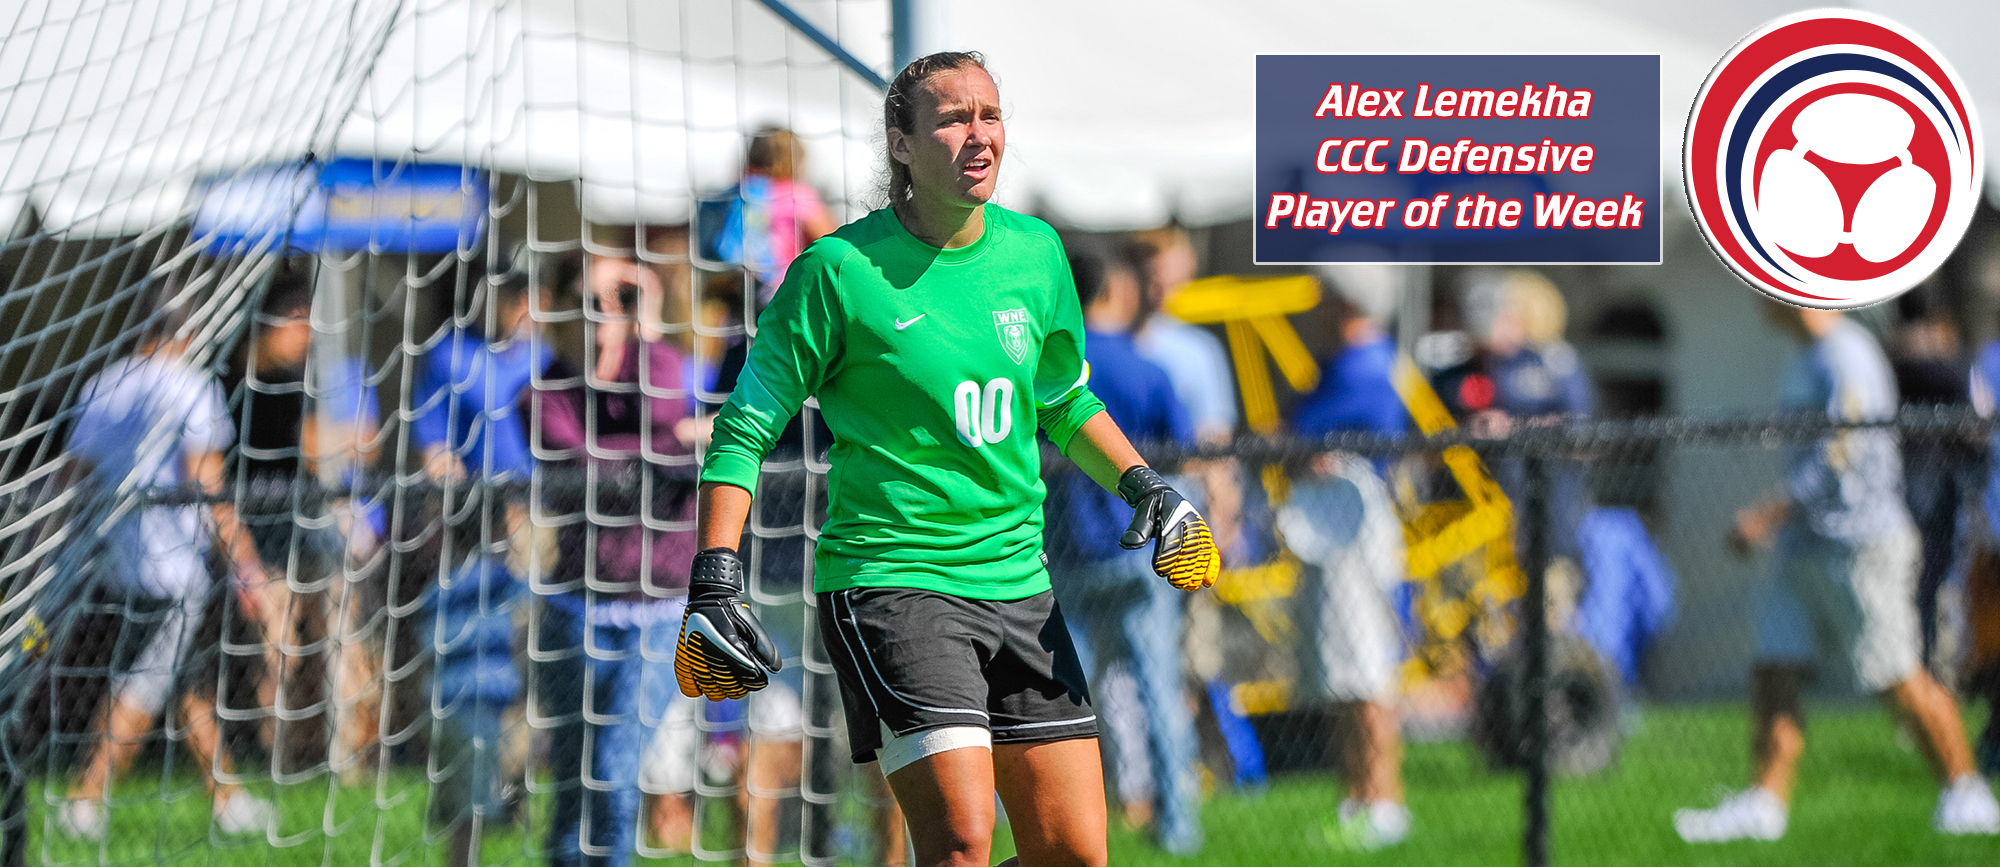 Alex Lemekha Receives Third CCC Defensive Player of the Week Award